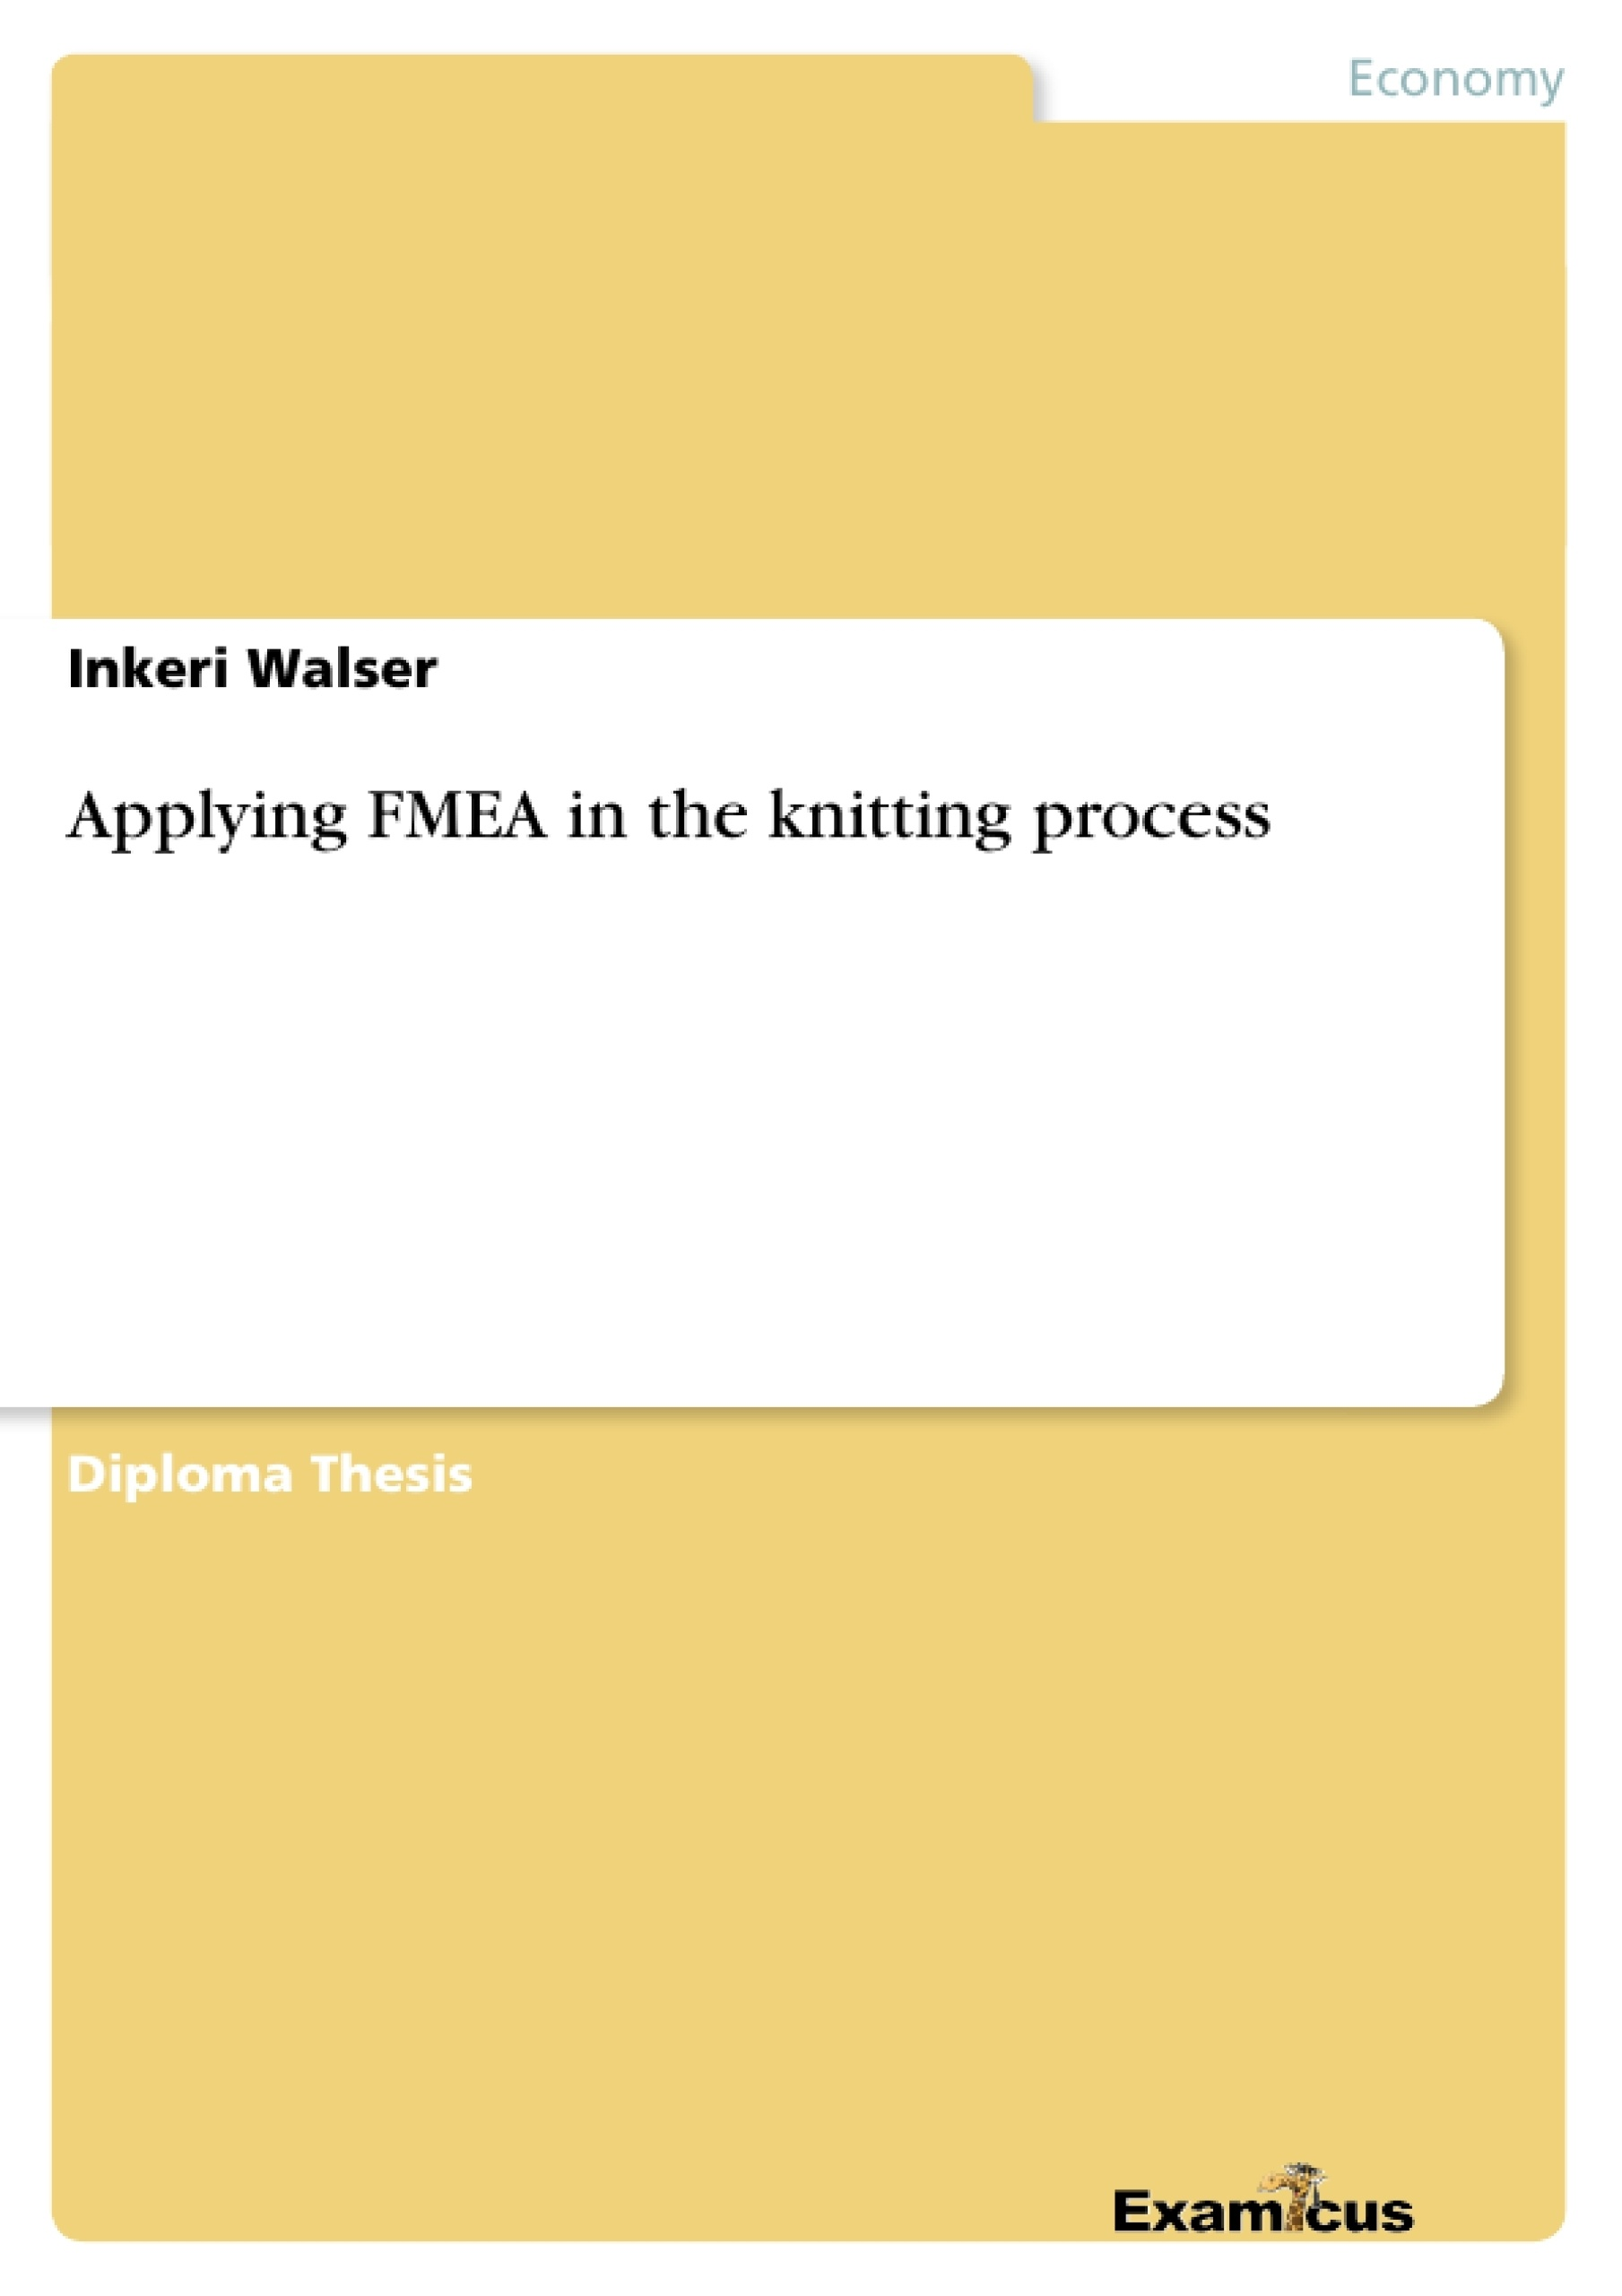 Title: Applying FMEA in the knitting process